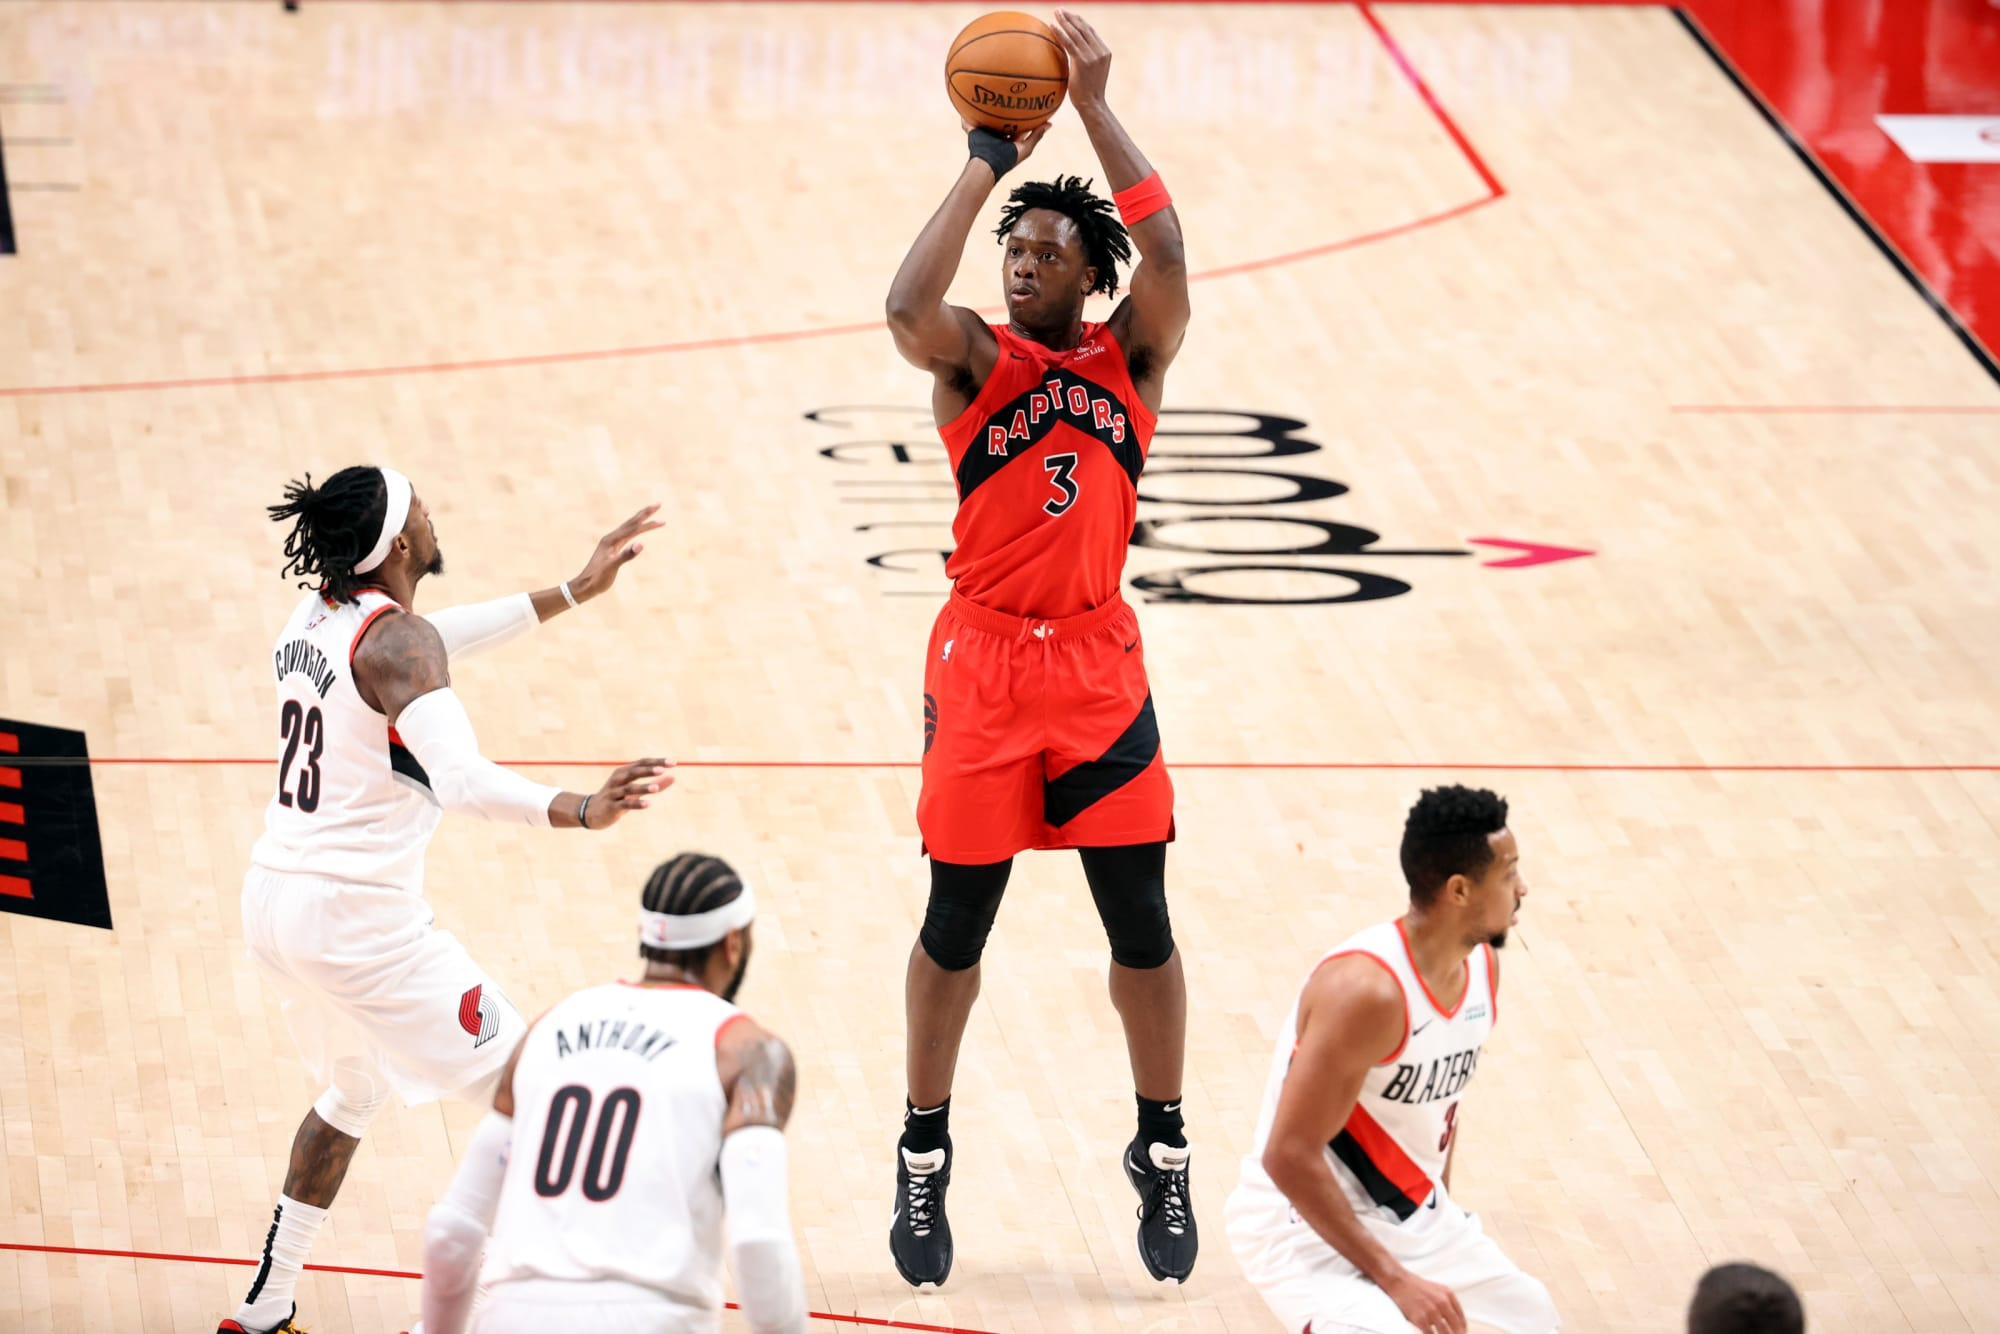 Toronto Raptors: OG Anunoby is ready to be a primary scoring option